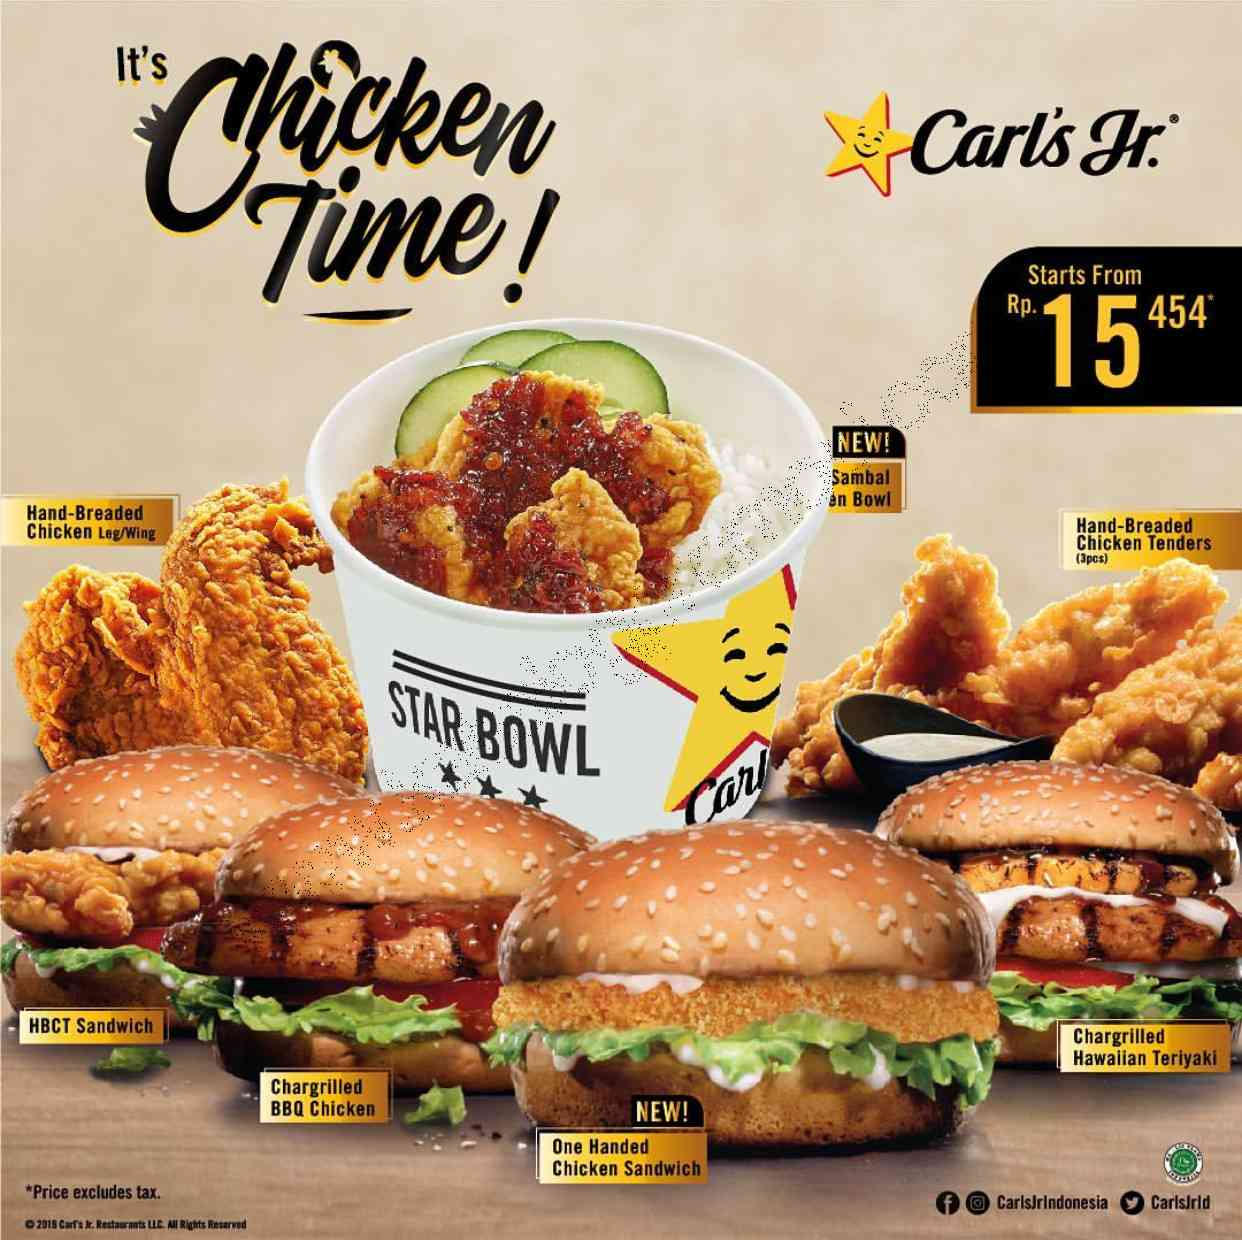 Carls Jr New t's Chicken Time! series